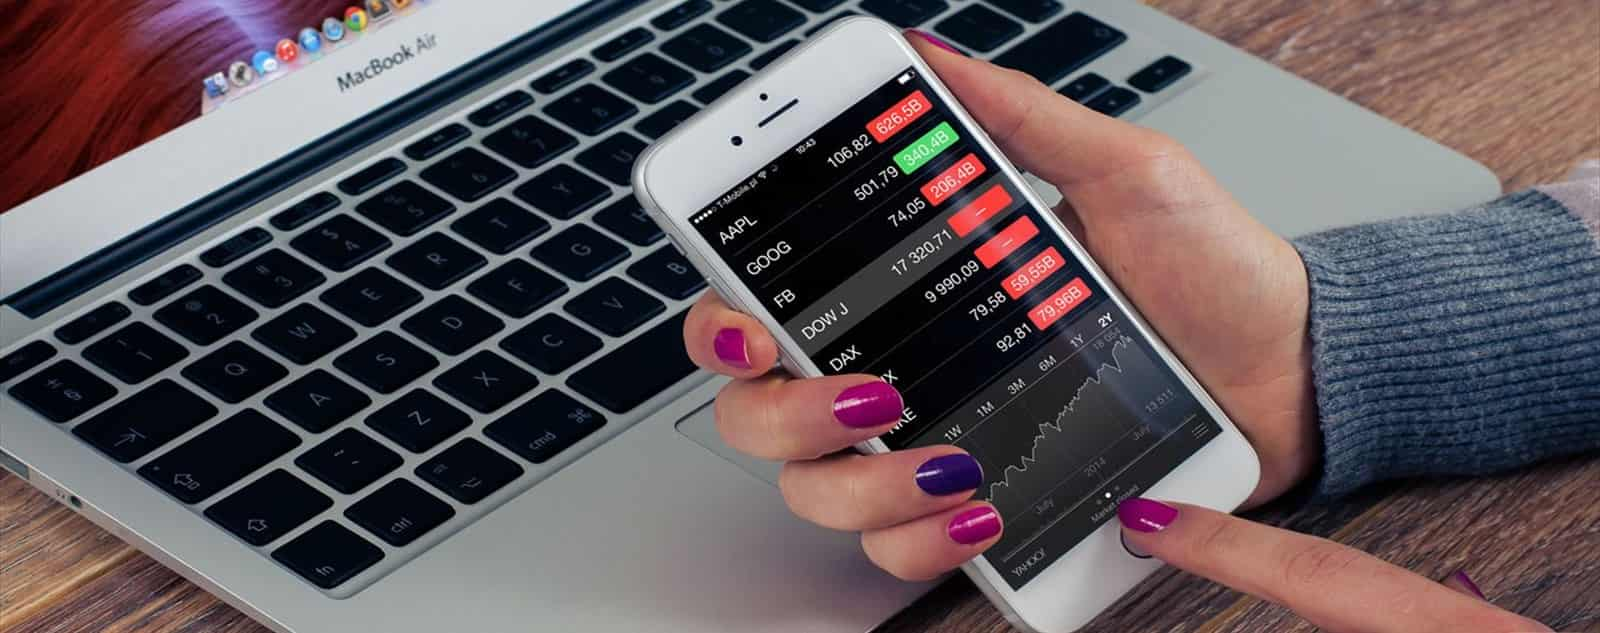 trading online using a smartphone